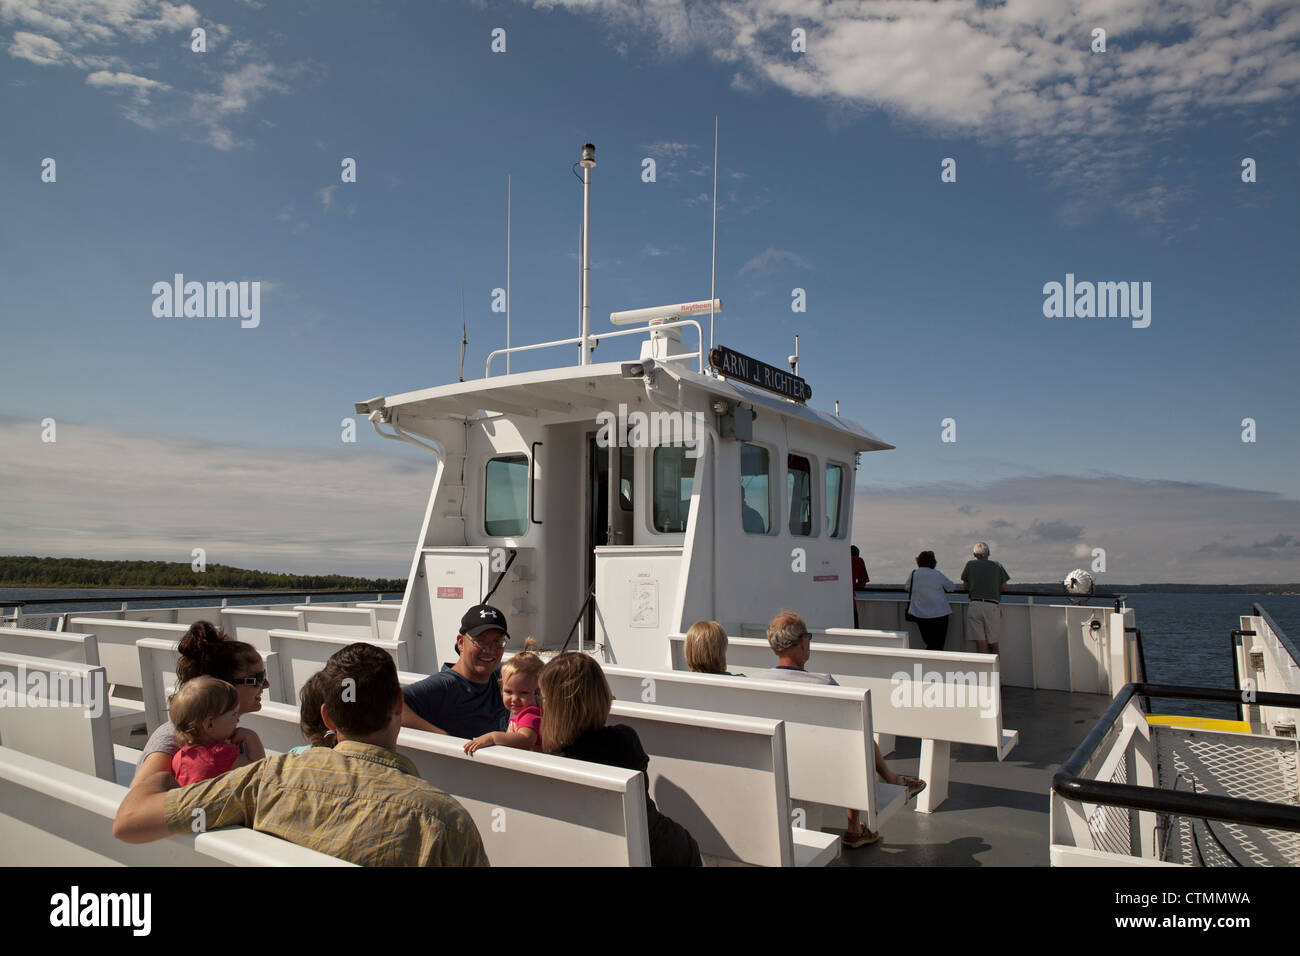 Families enjoy the ferry ride on Lake Michigan in Door County, Wisconsin. - Stock Image